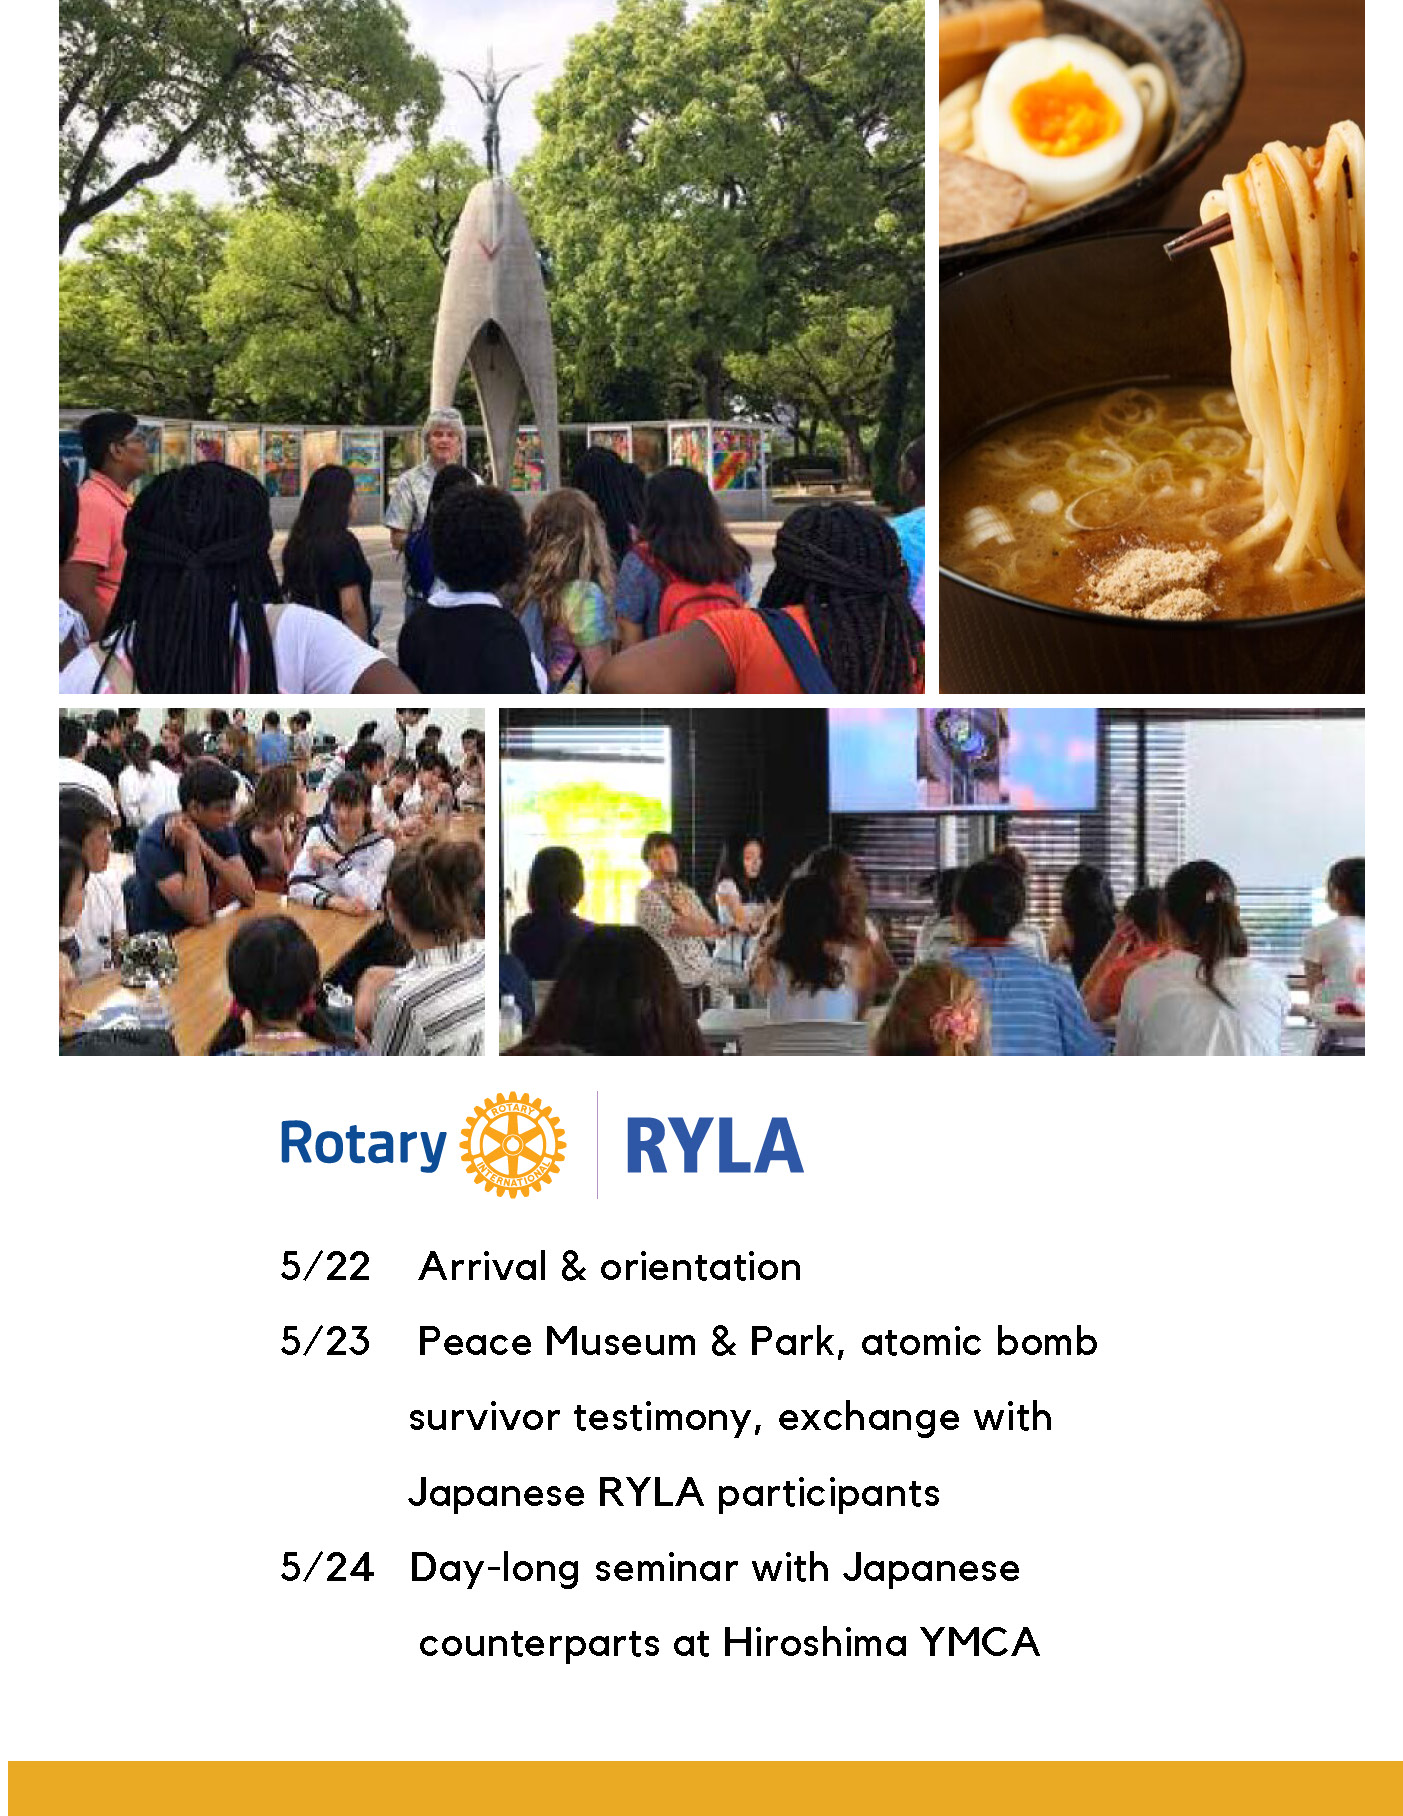 RYLA_IN_HIROSHIMA_Reduced_Size_Page_3.jpg